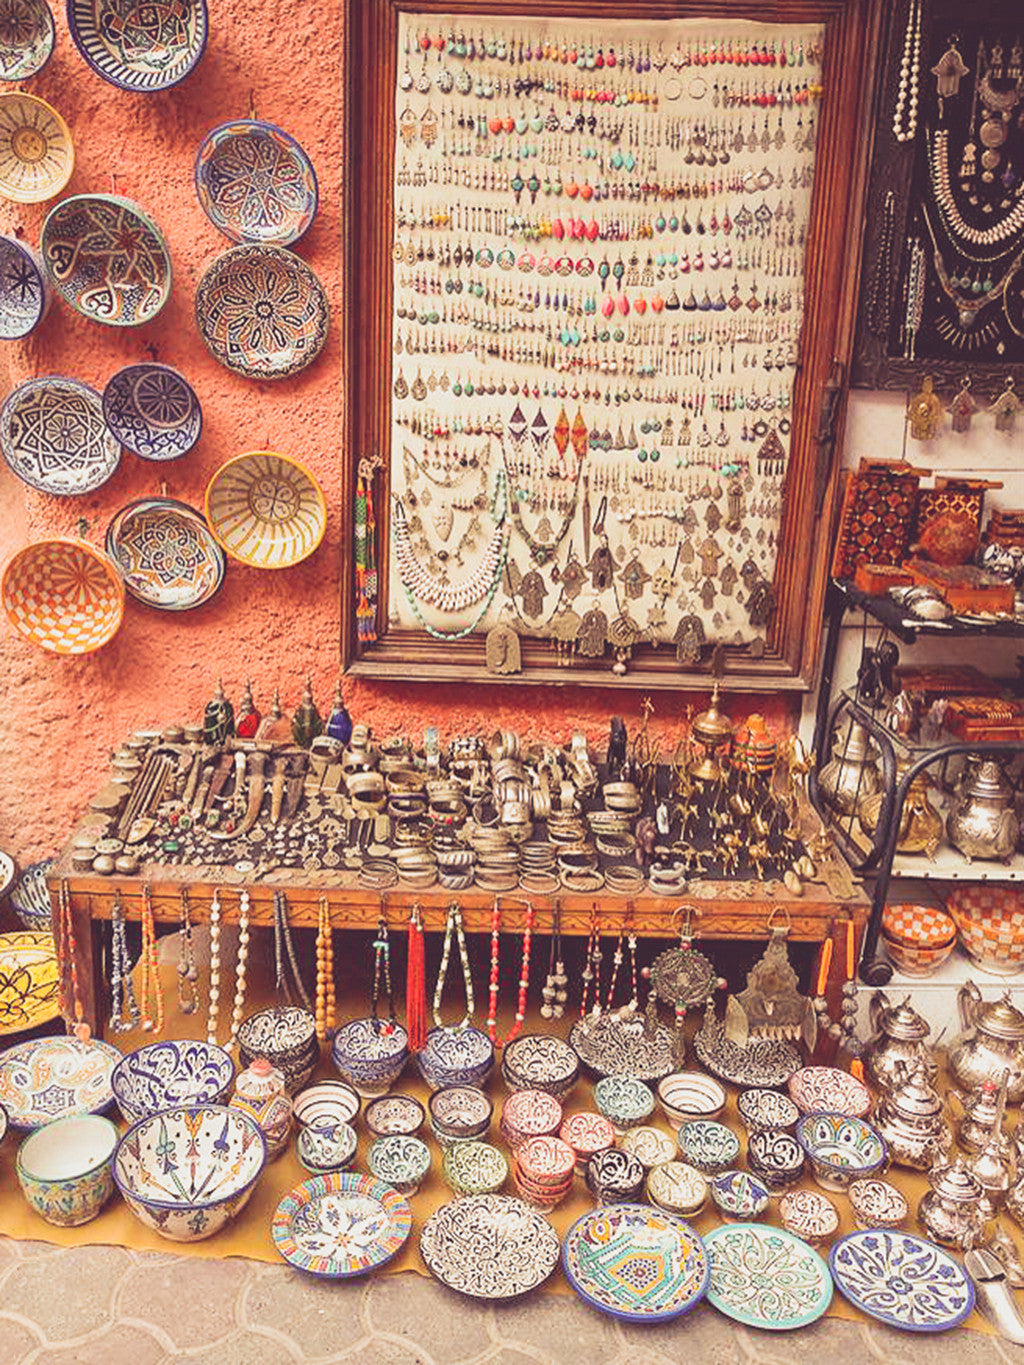 Silver jewelry and ceramic souvenirs | souk market Marrakech | Travel Guide | Shopping | Morocco